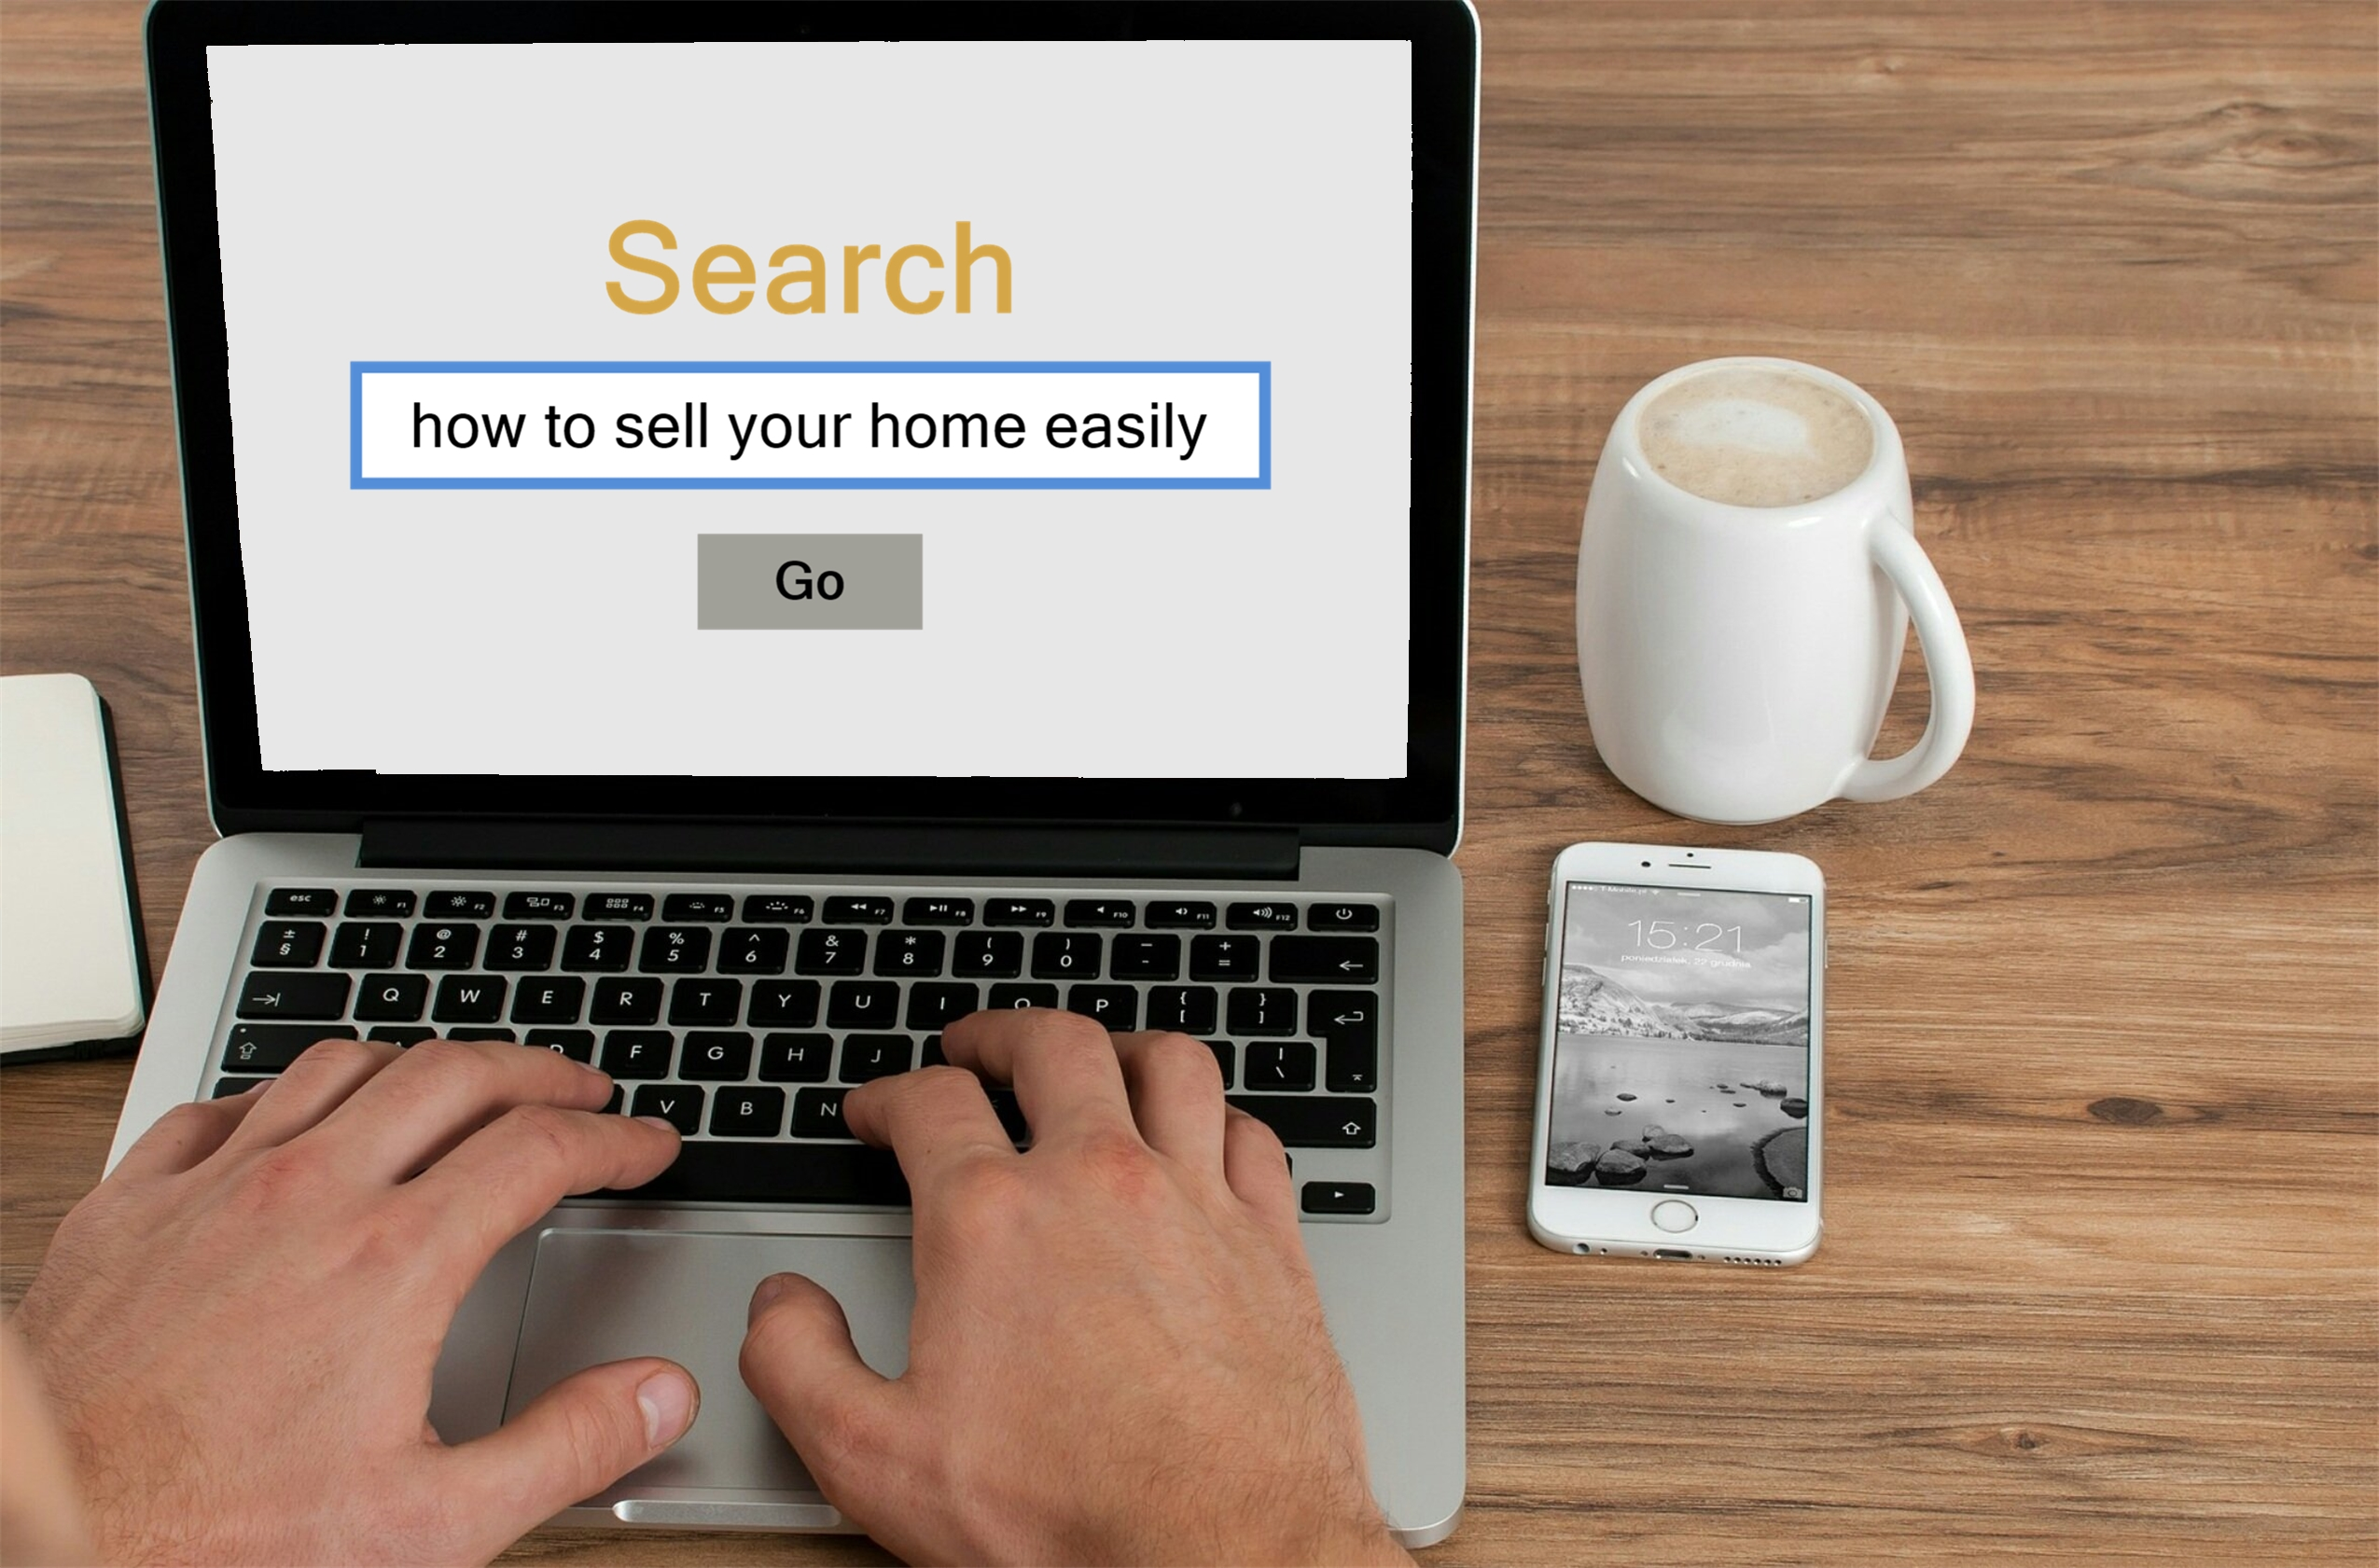 A person using a laptop beside a coffee mug and smartphone searching how to sell your home easily